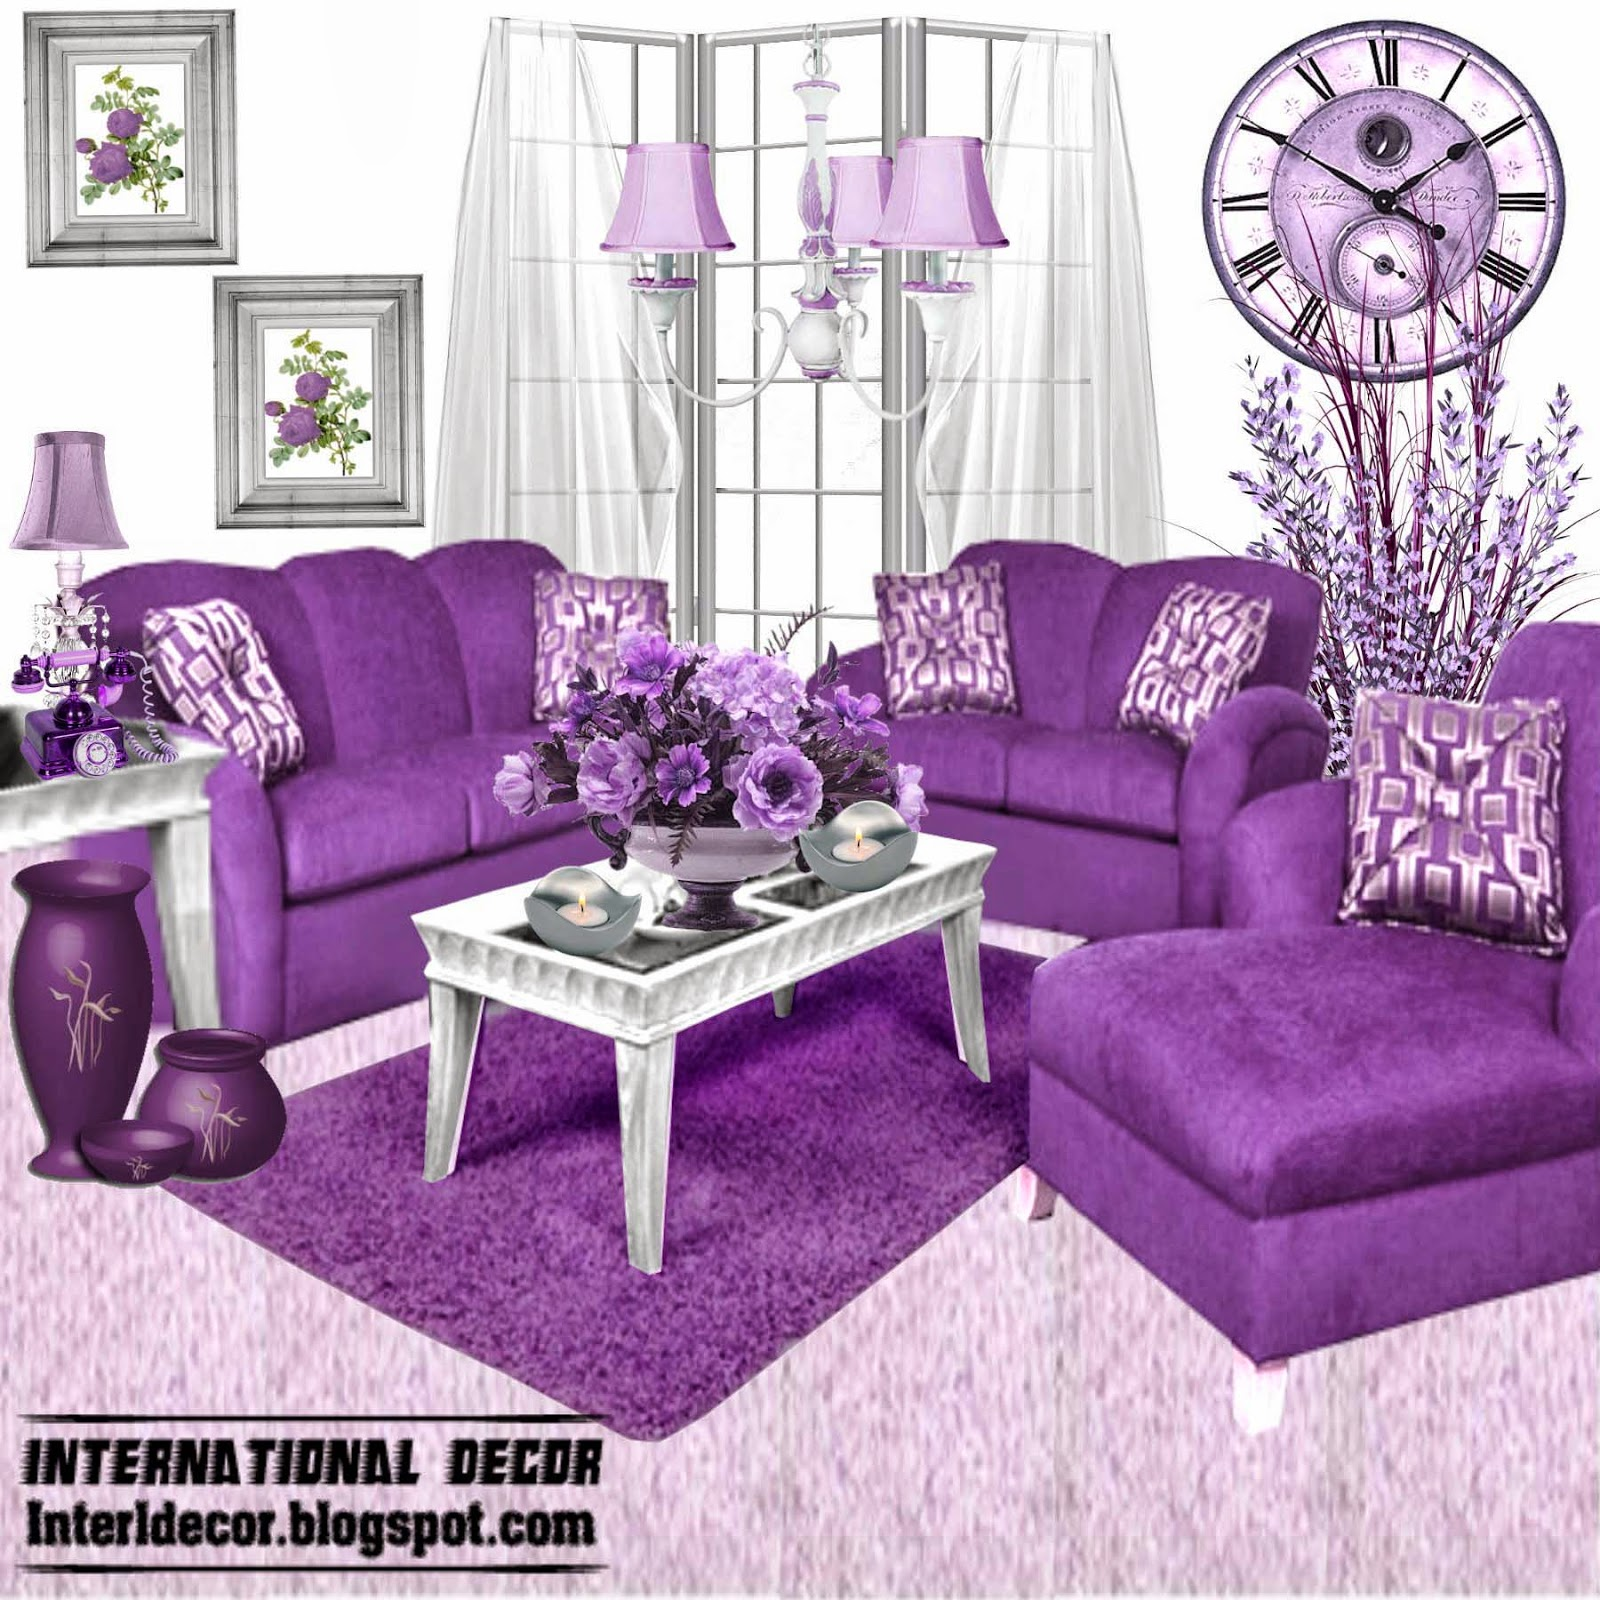 Purple furniture for the home pinterest purple for Drawing room chairs